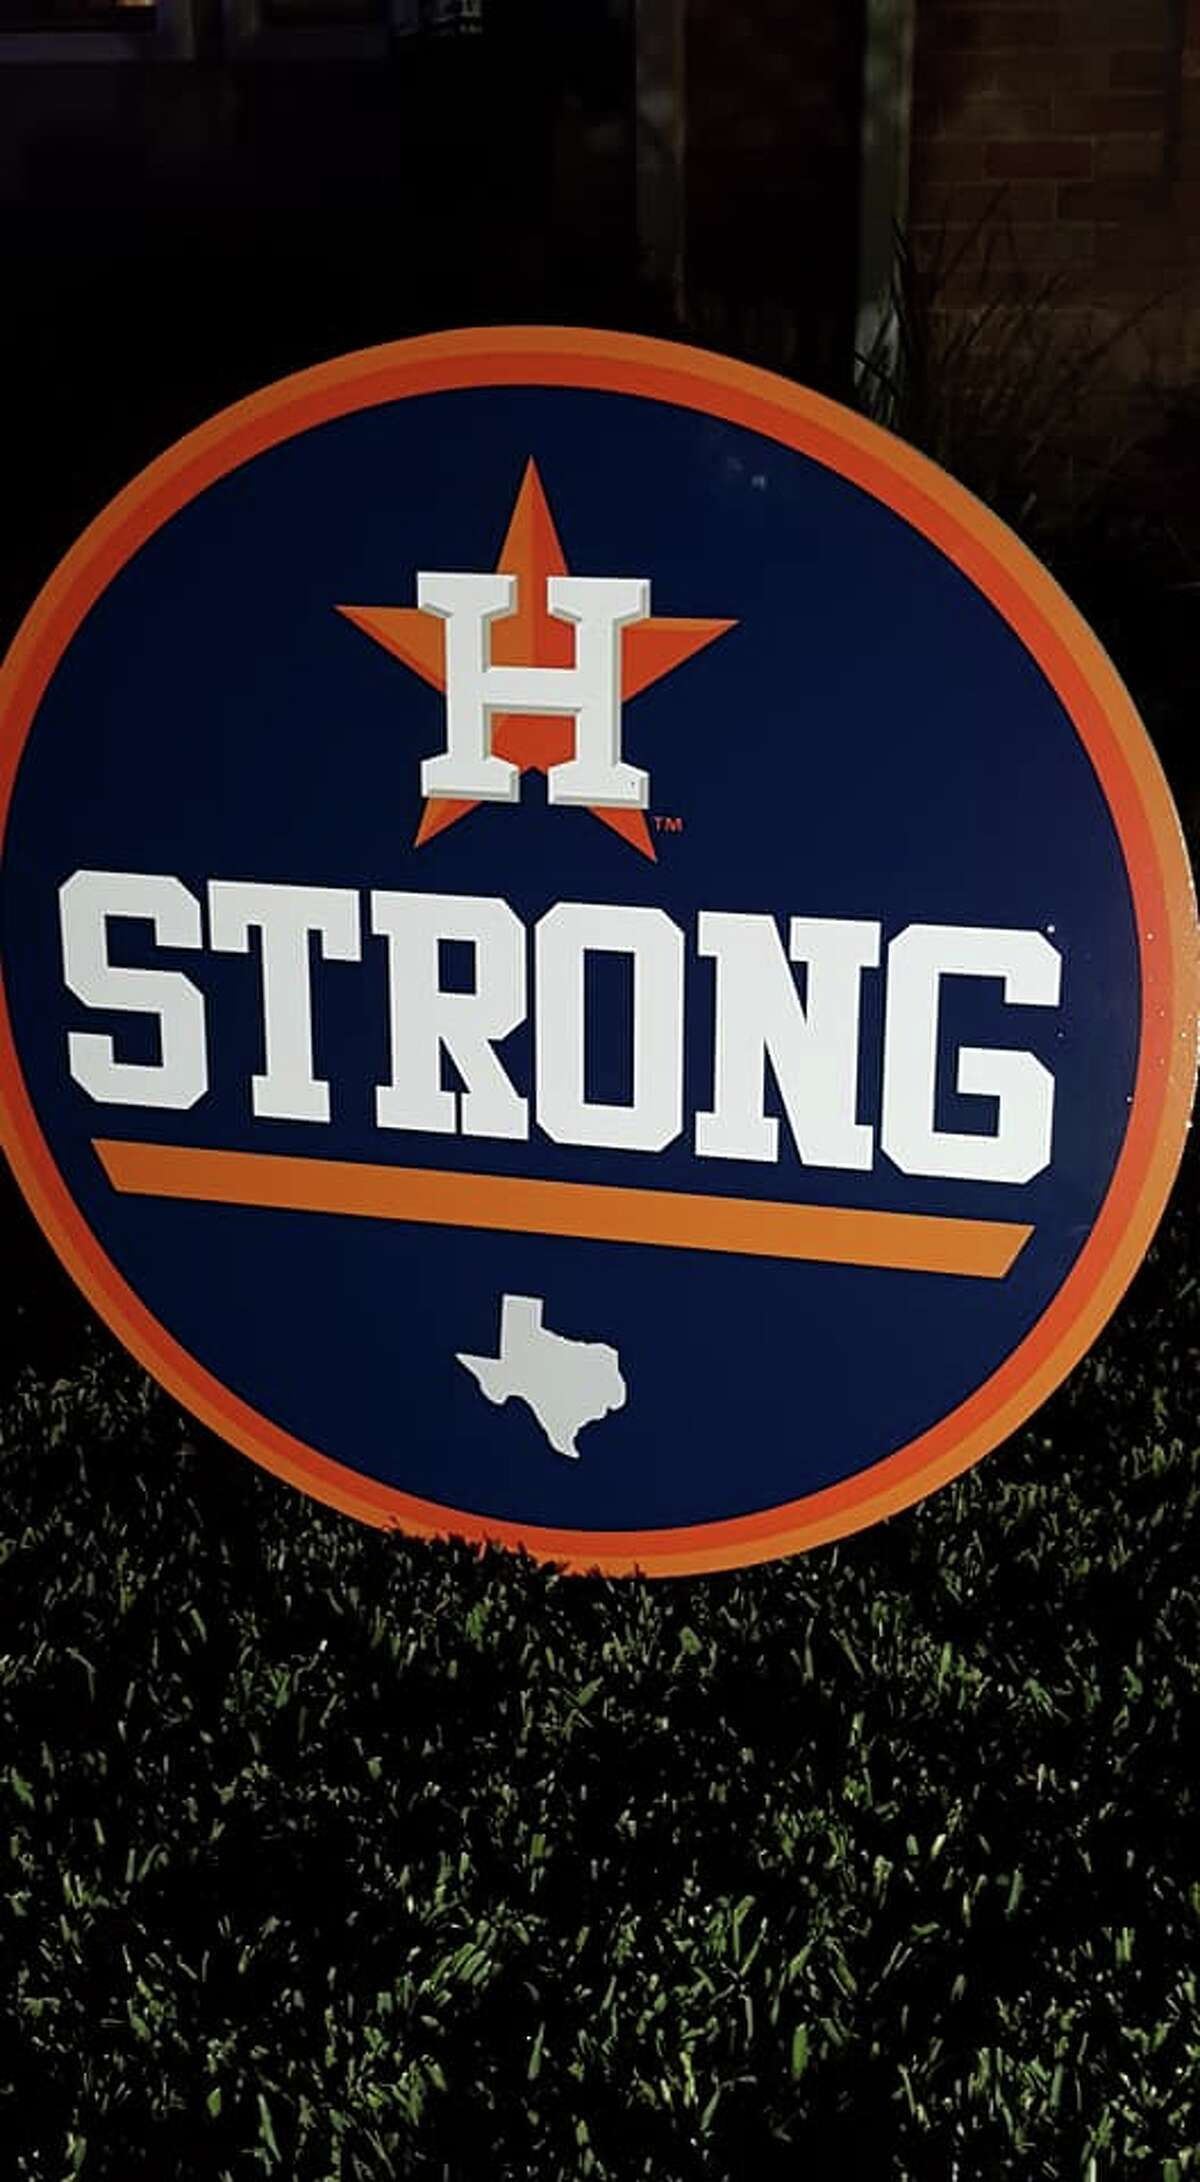 A Pearland guy joined a handful of other Houston-area residents in dedicating their front lawn Christmas decorations to the Astros' epic World Series run.